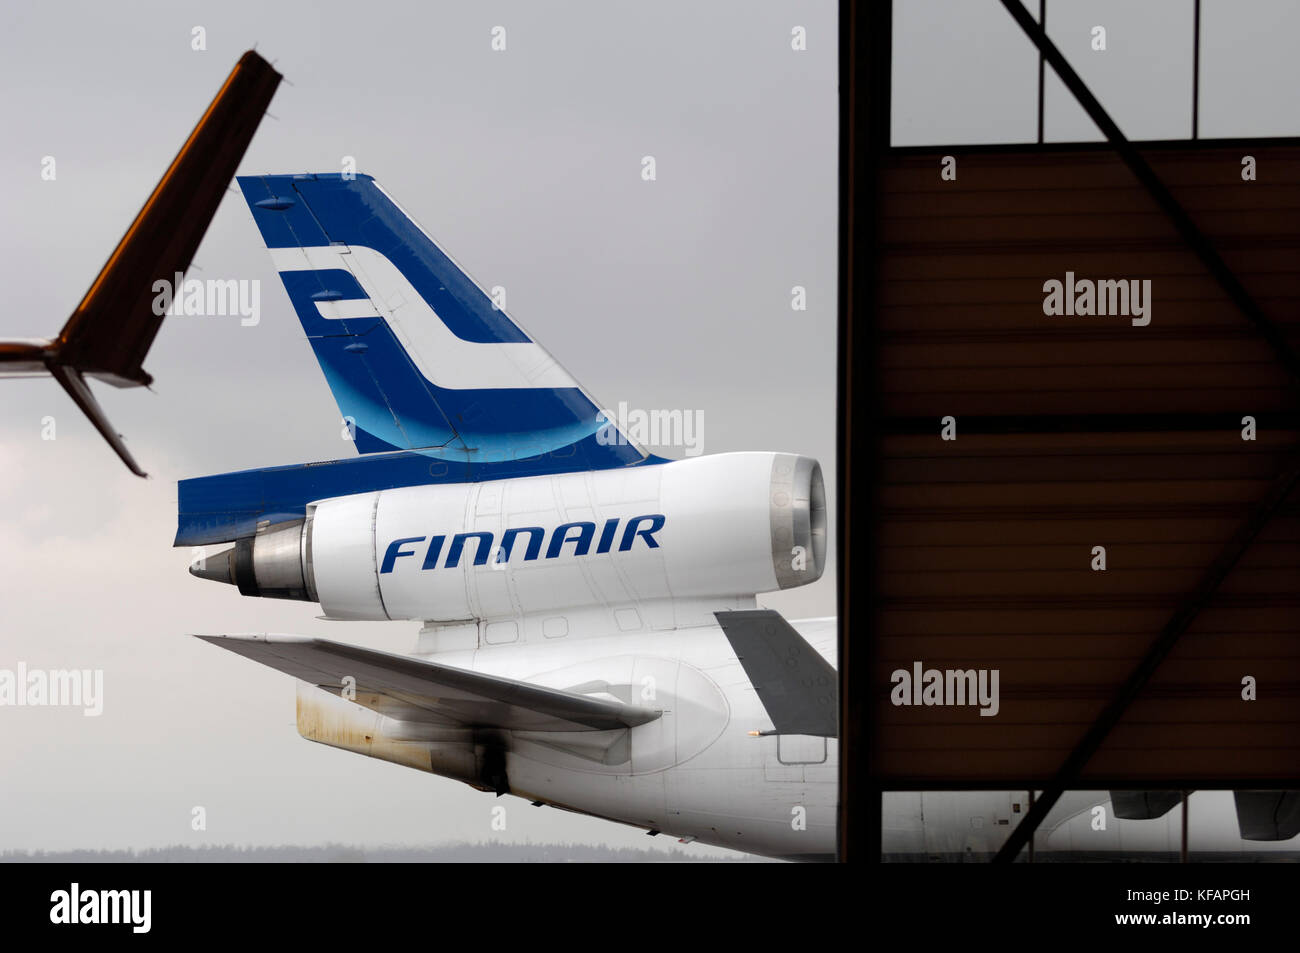 winglets, tail and CF6-80C2D1F engine on a Finnair McDonnell Douglas MD-11 outside hangar Leko 7 at Finnair Technical - Stock Image